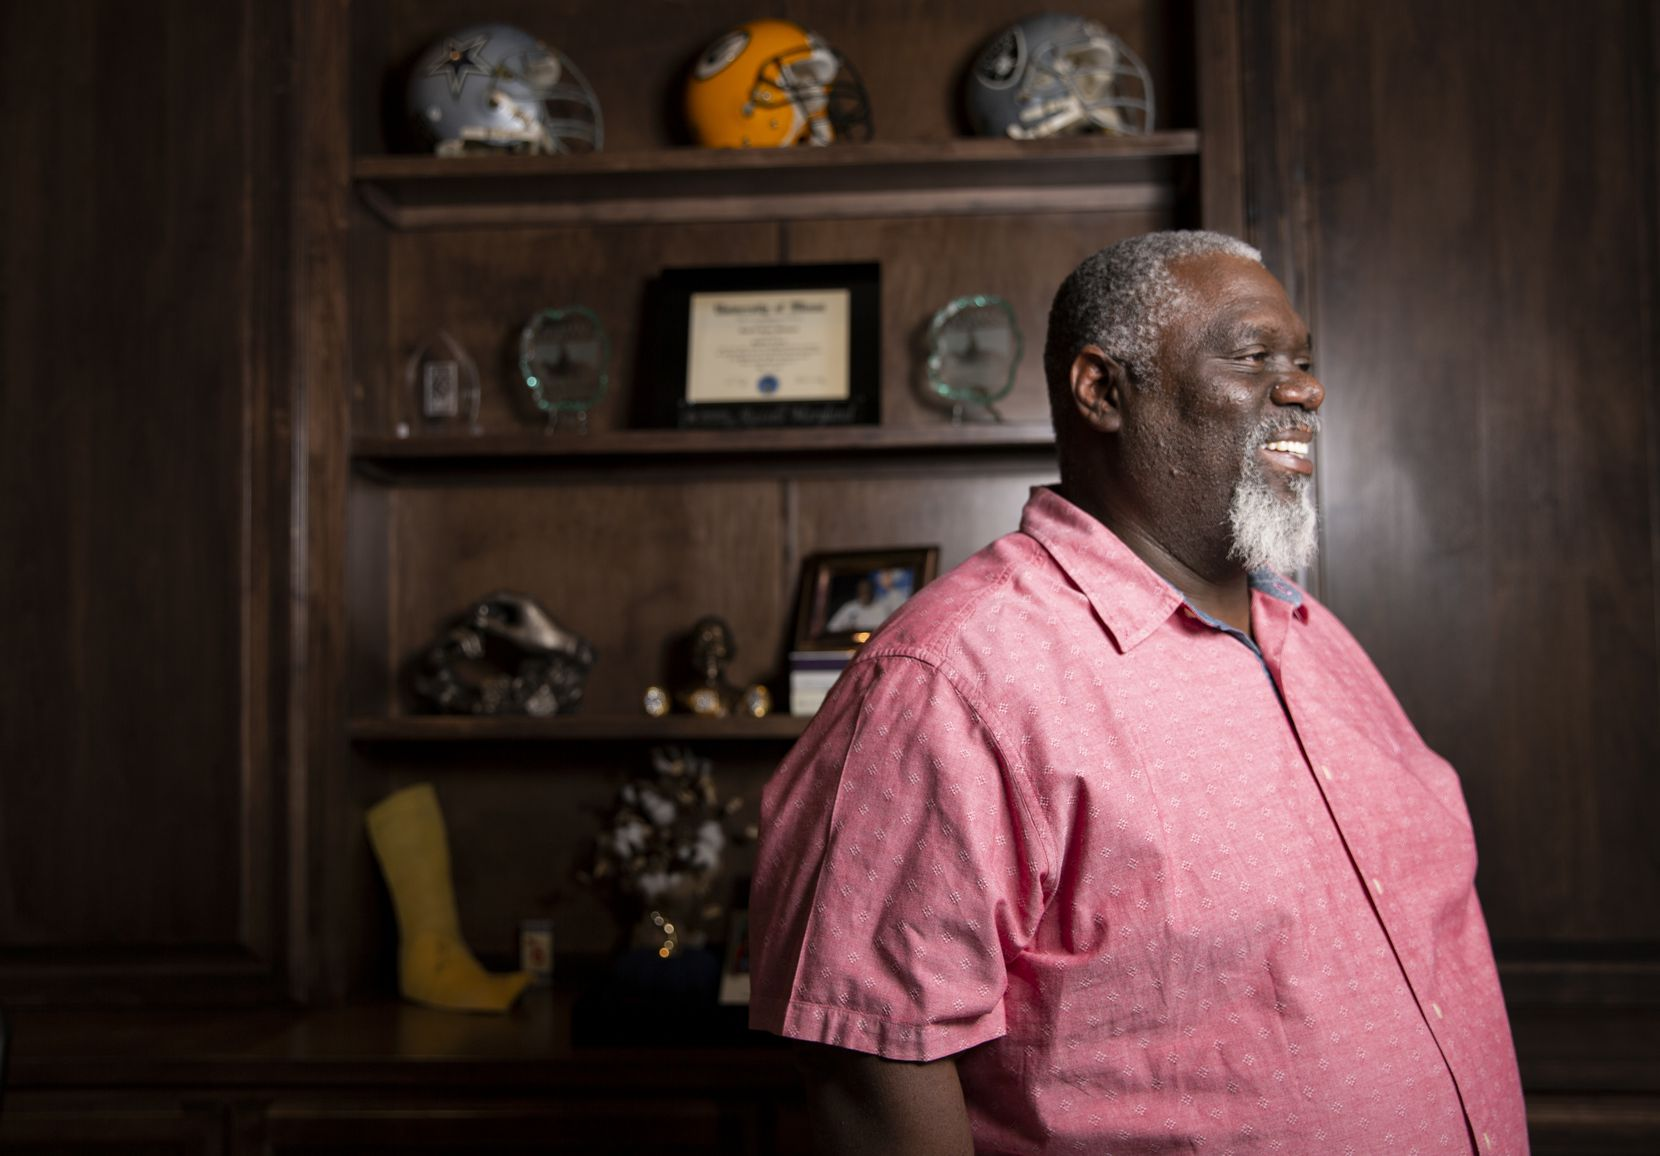 Former Cowboys defensive tackle Russell Maryland poses for a photo at his home in Southlake on Monday, Oct. 26, 2020.